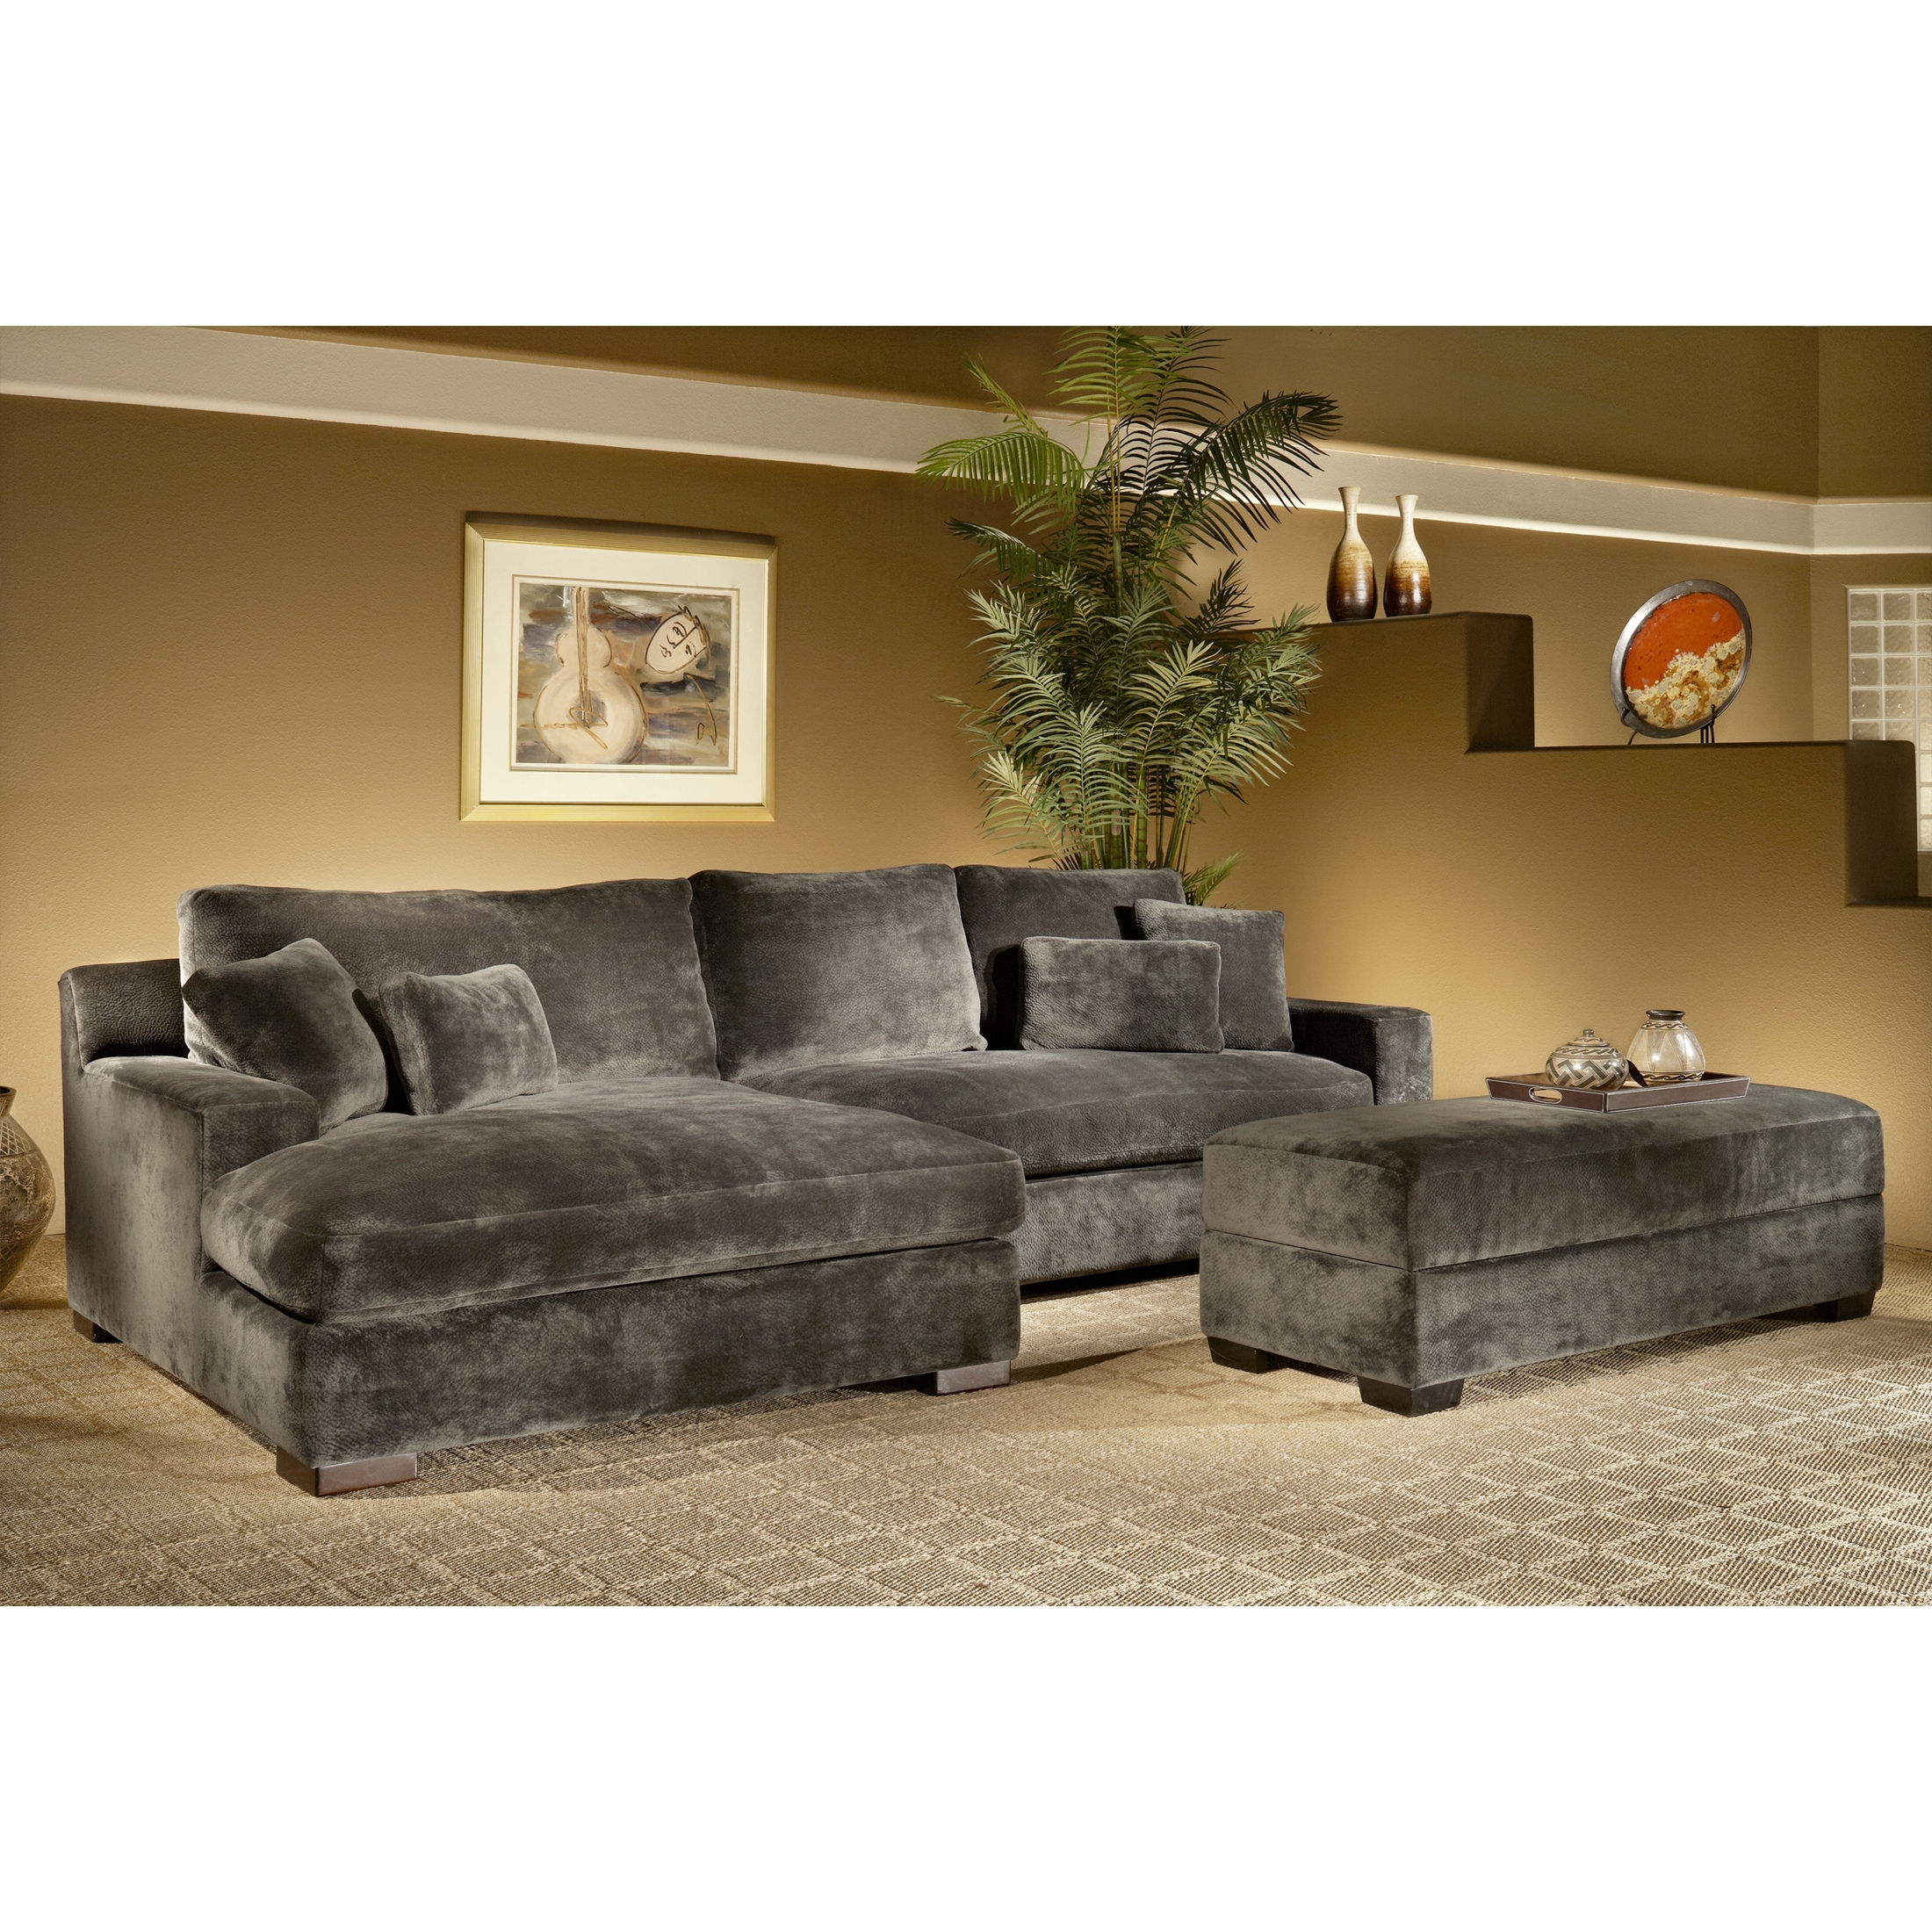 The Casual Contemporary Doris Two Piece Chaise Sectional Is Inside Famous Kingston Ontario Sectional Sofas (View 19 of 20)